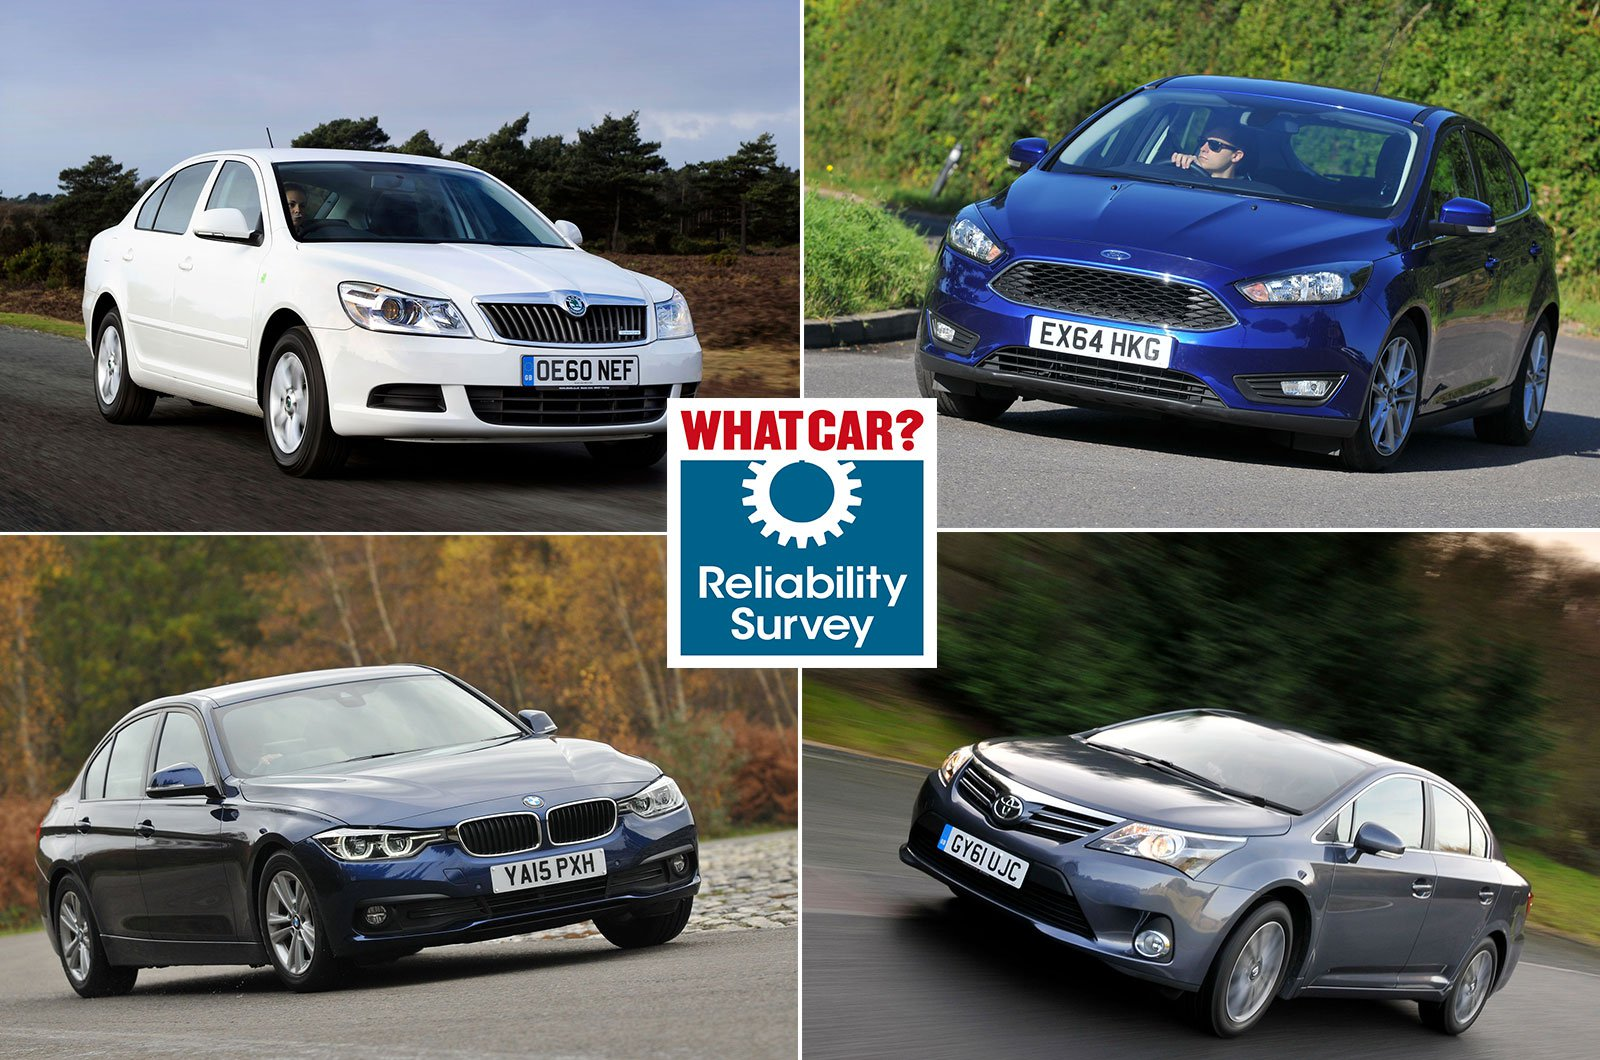 Best High Mileage Cars For Reliability